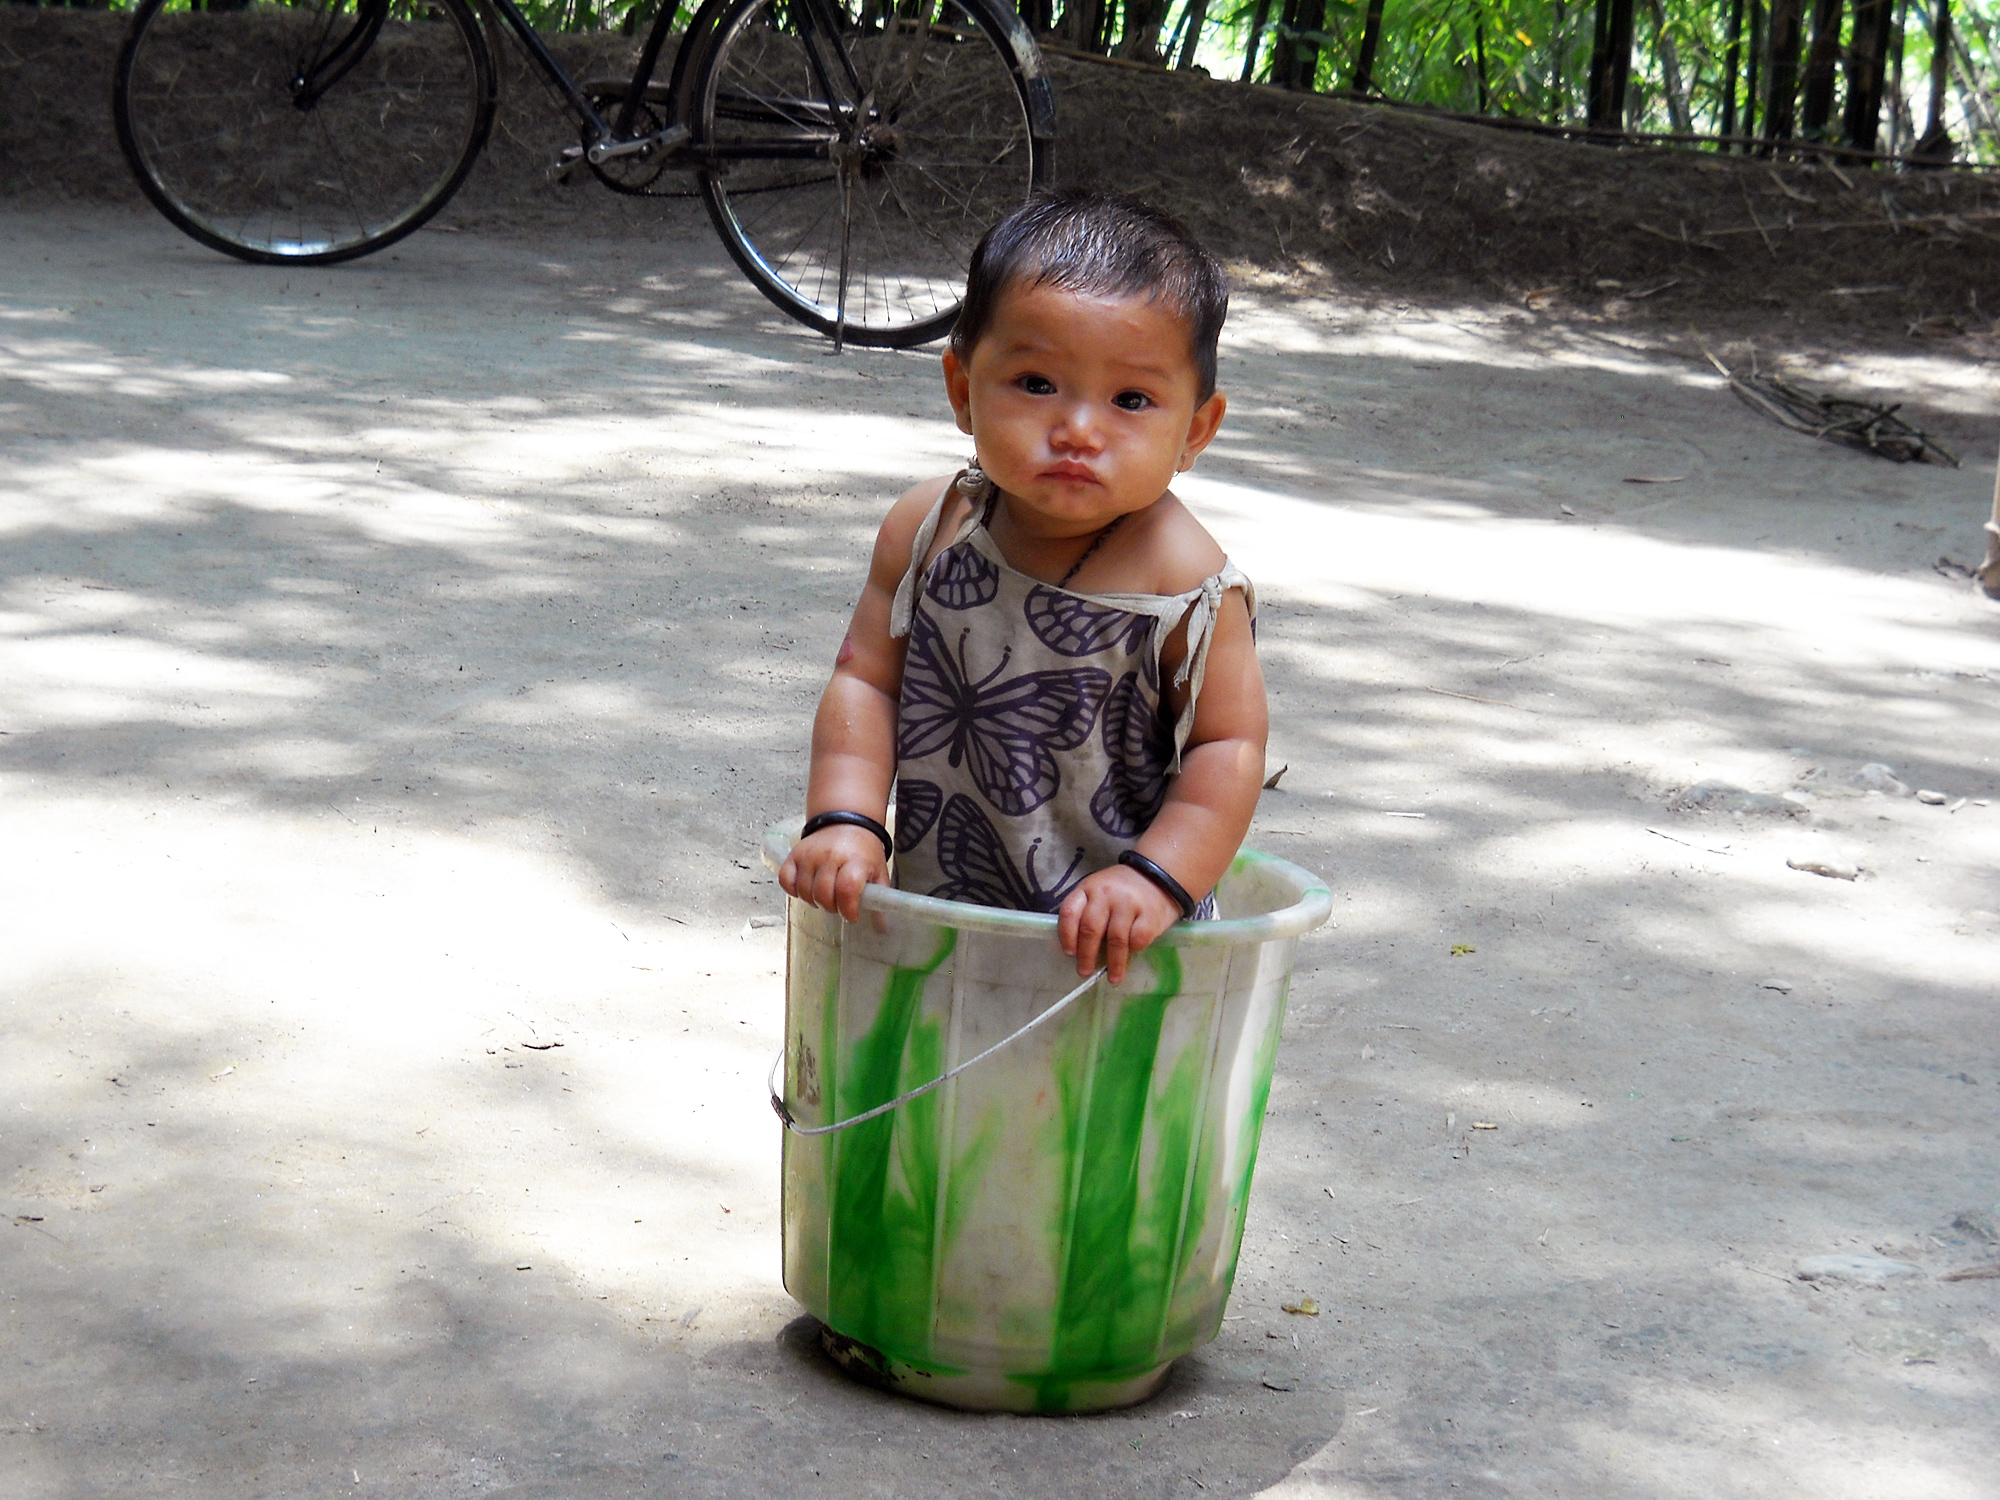 Child in a Bucket